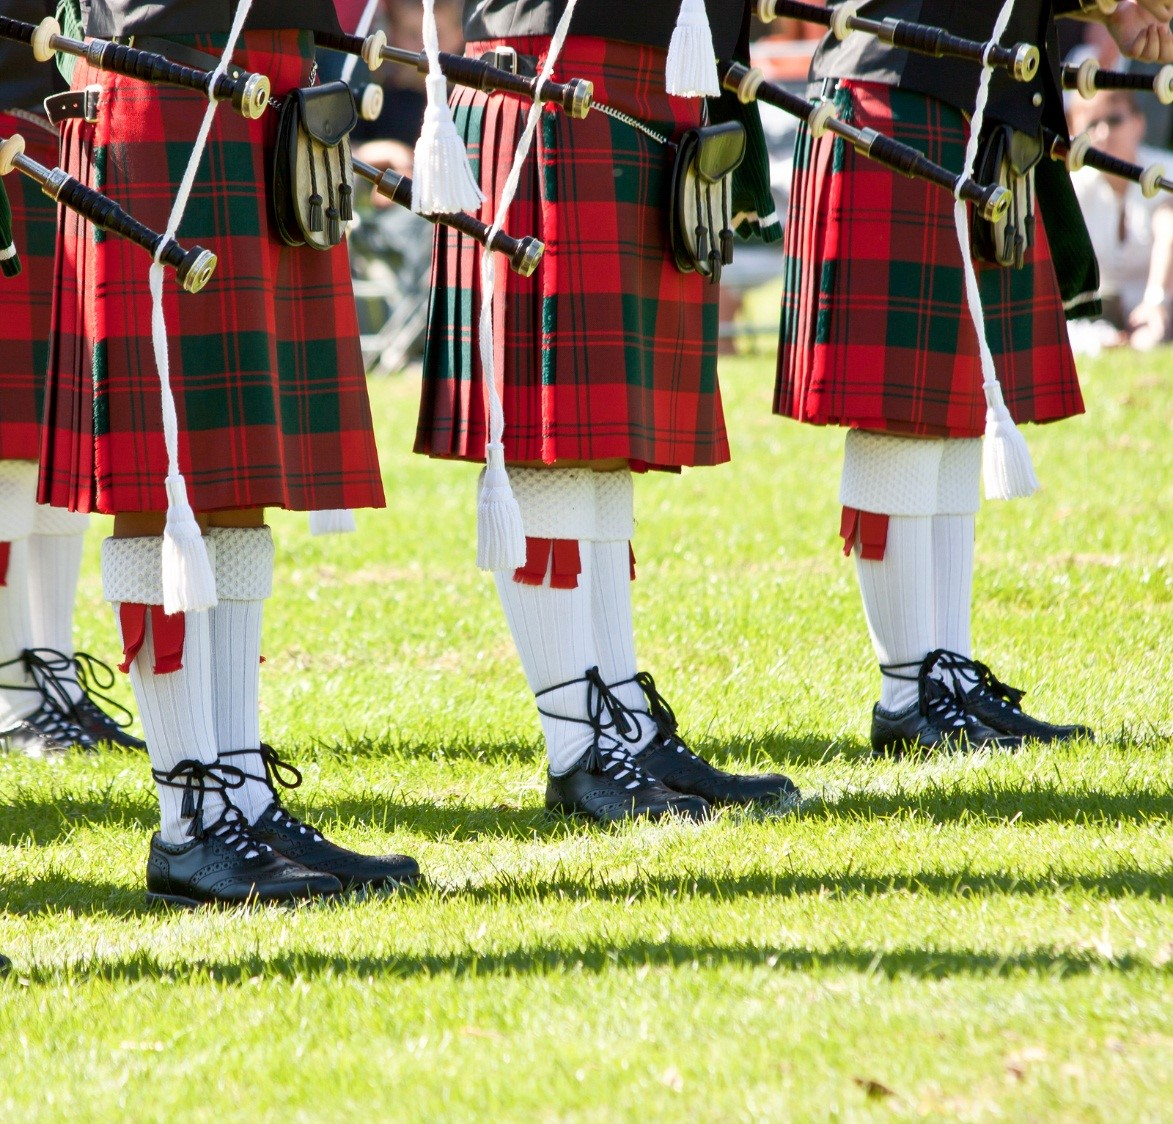 It's Not Just About Kilts: Fast Facts For The Highland